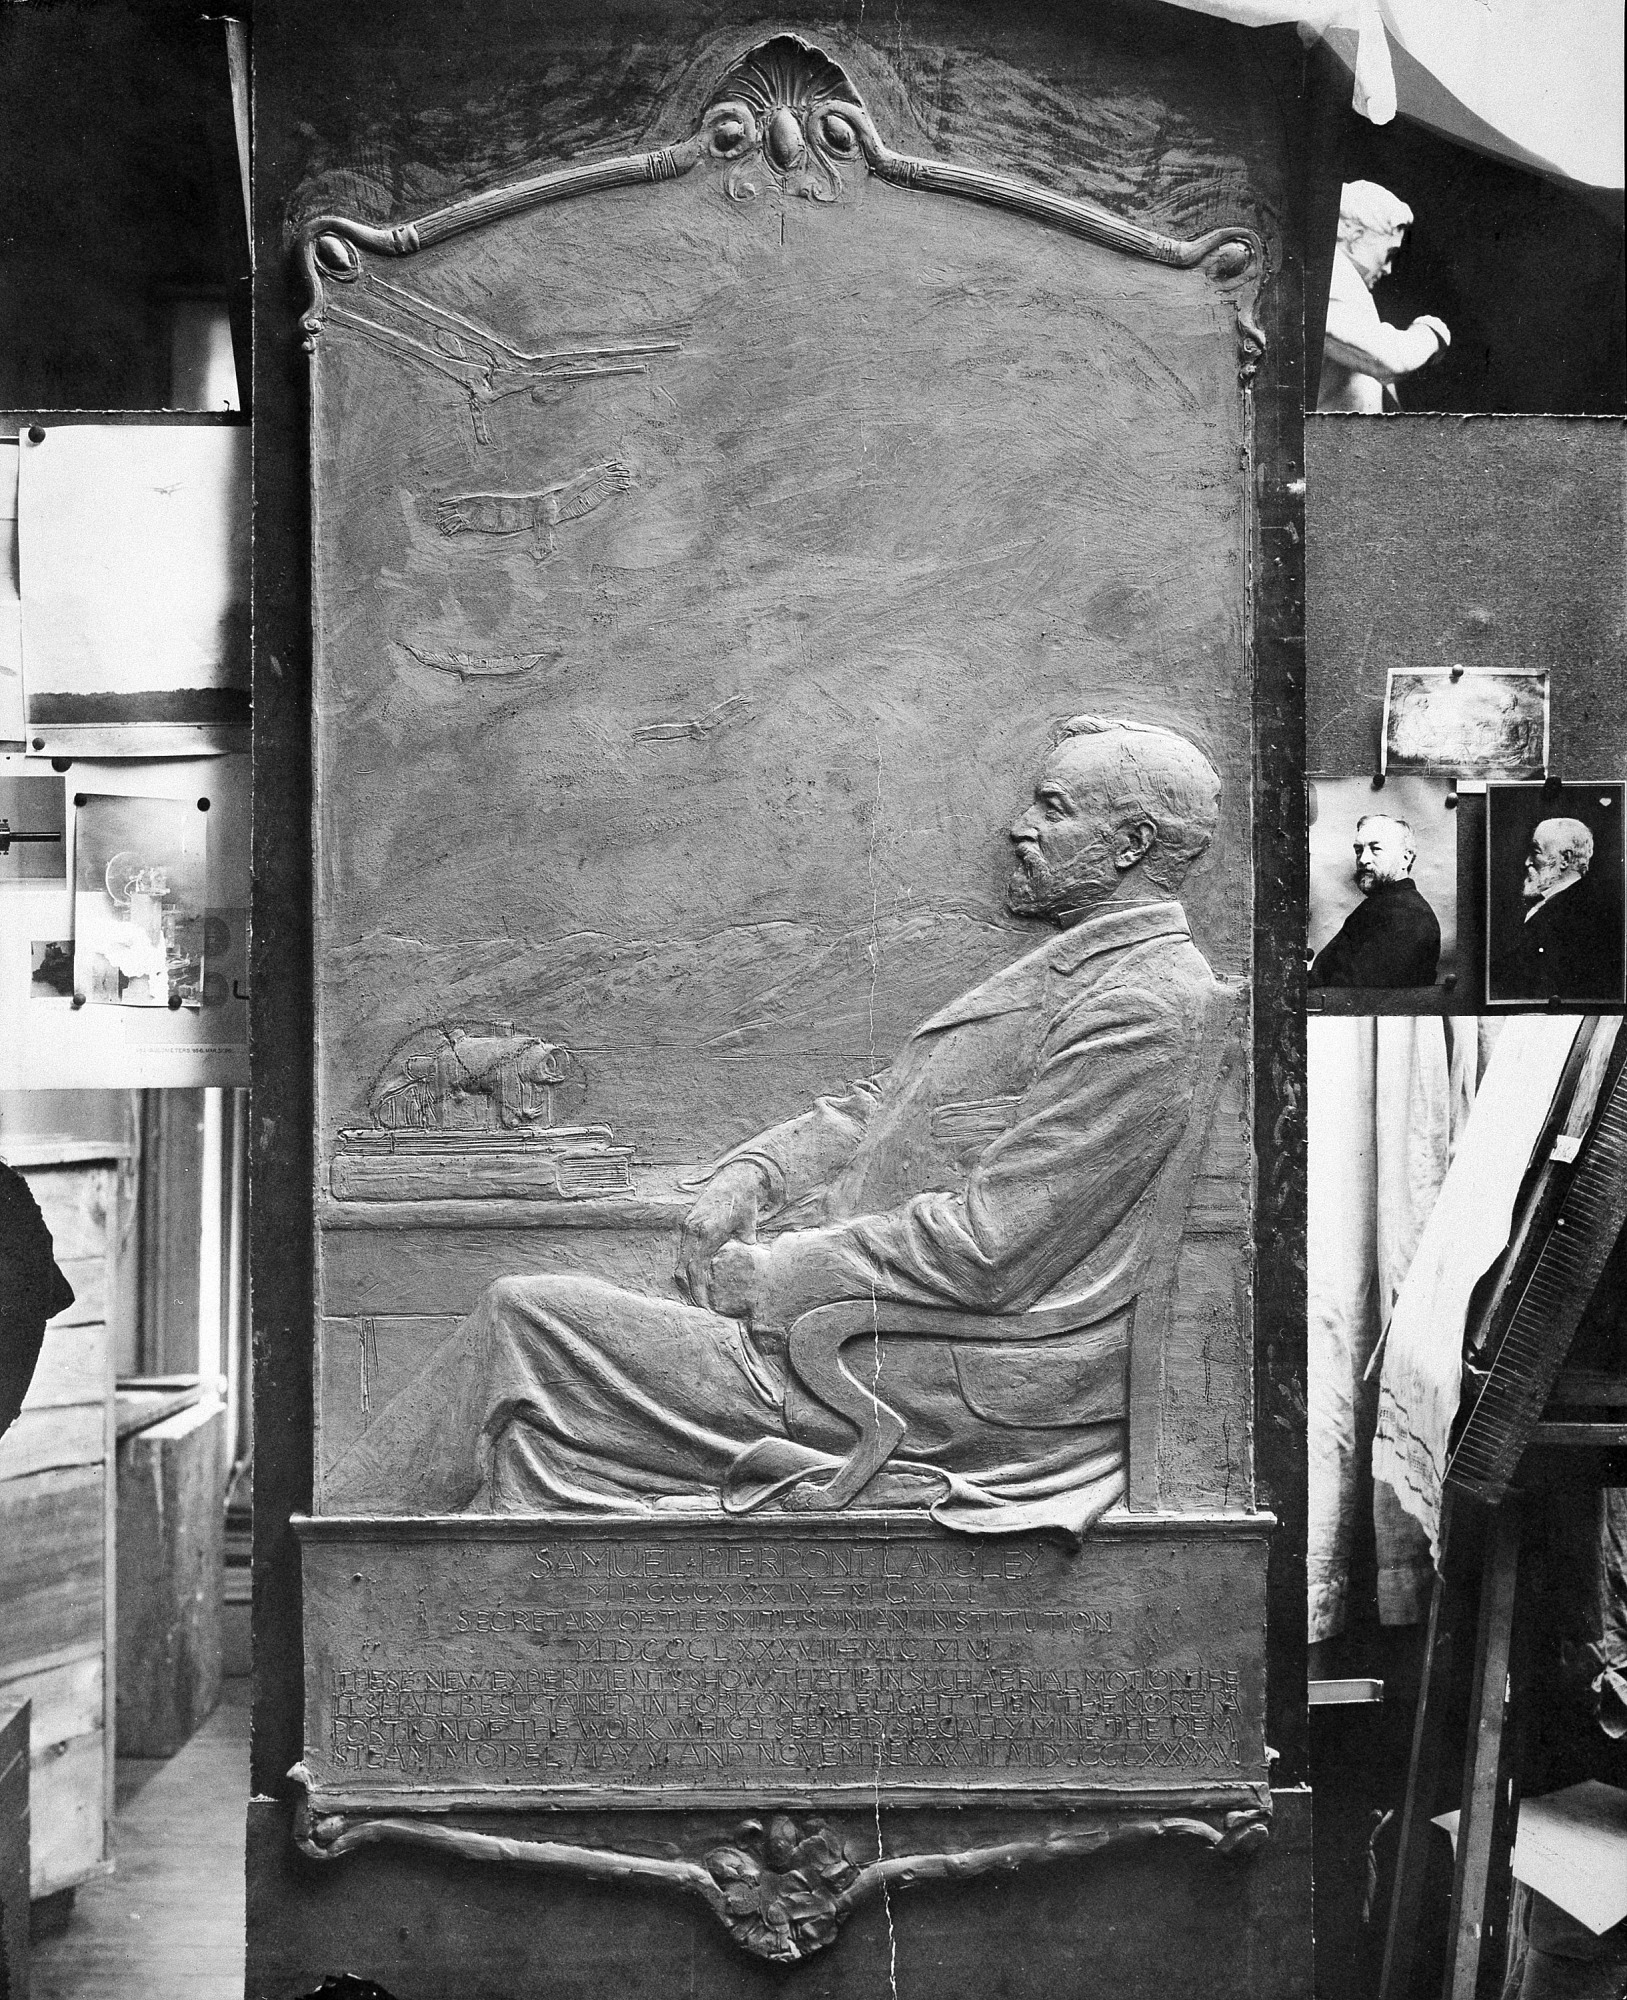 Samuel P. Langley Memorial Tablet, by Unknown, 1908 c, Smithsonian Archives - History Div, 82-3198.